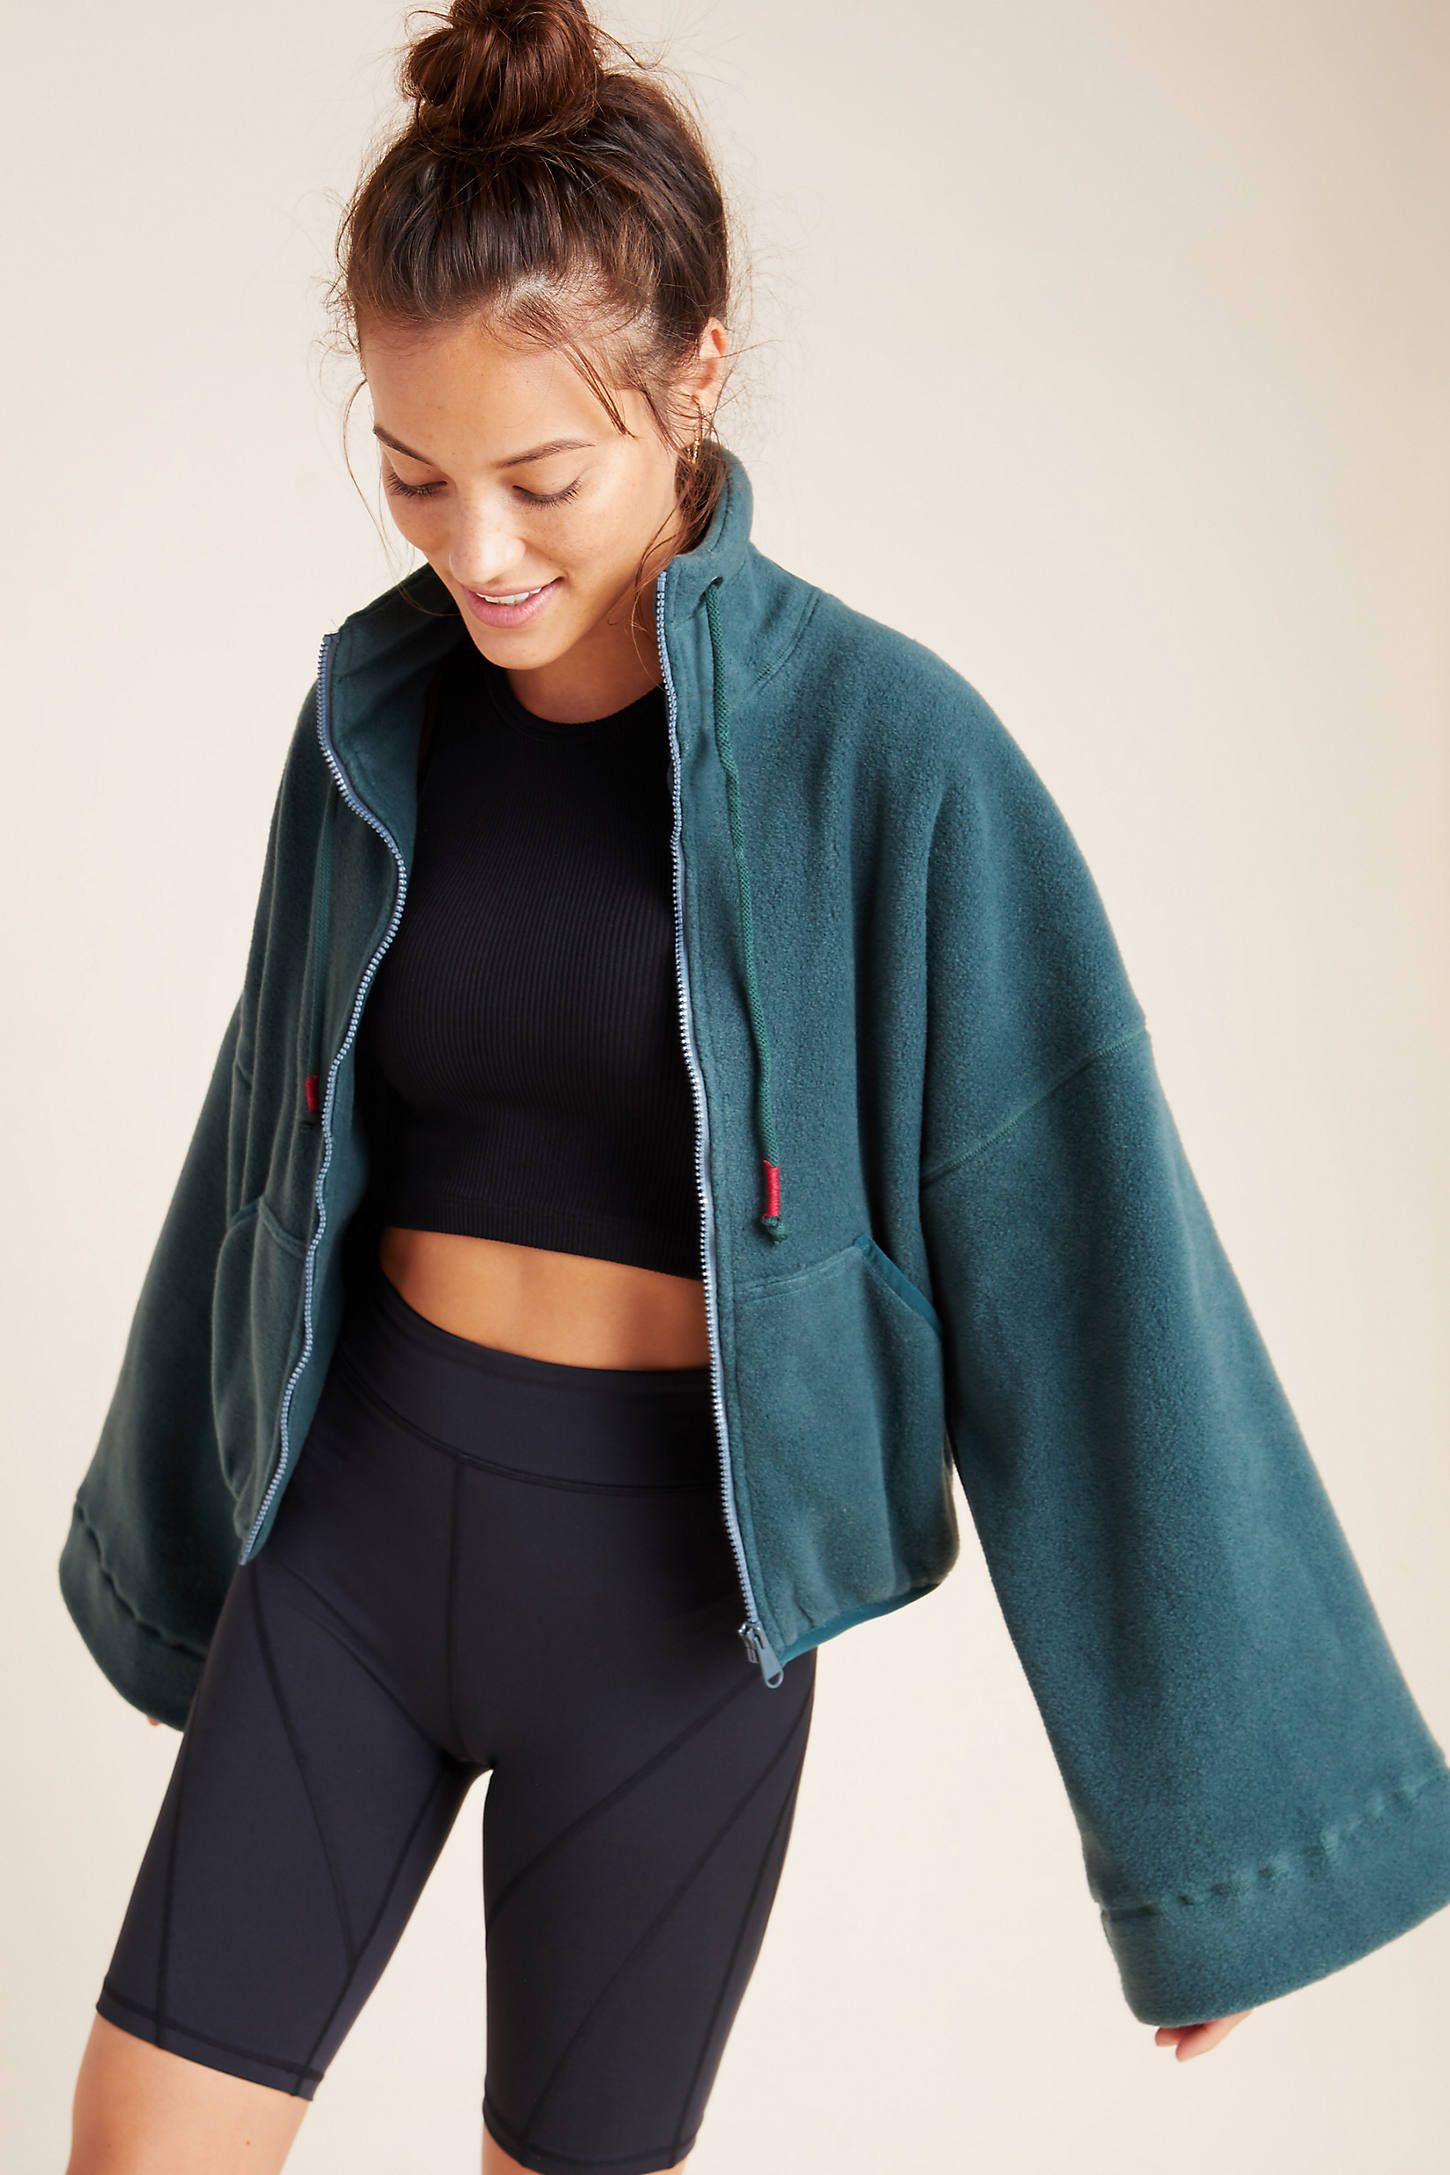 Free People Movement Climb High Fleece by in Grey Size: Xs, Women's Activewear at Anthropologie